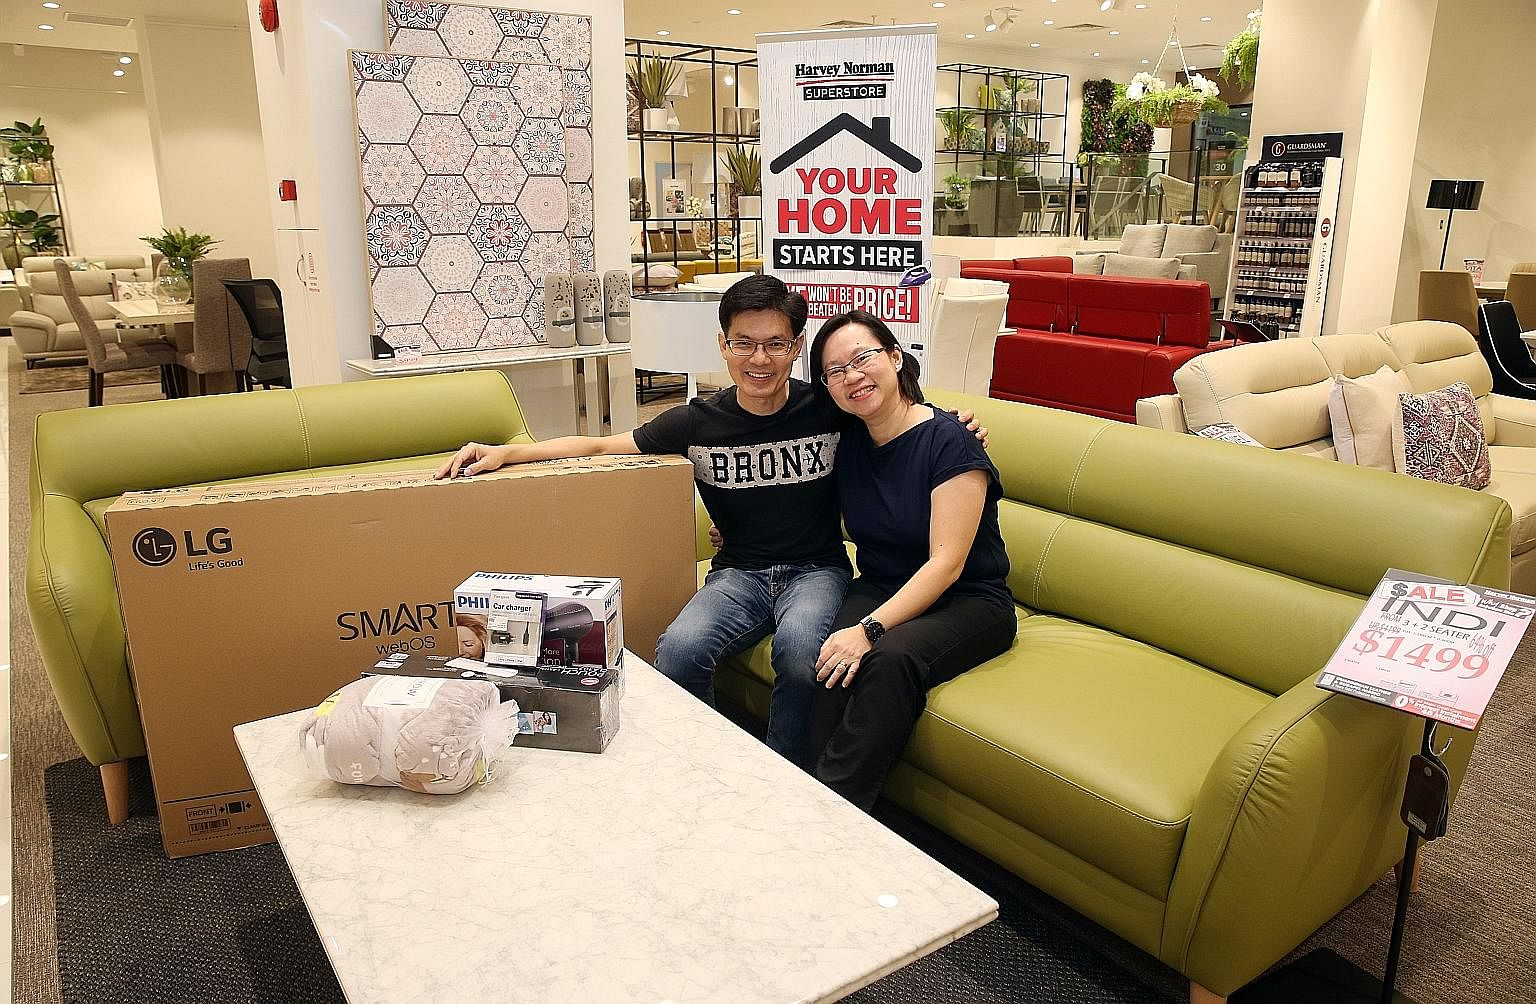 Mr Lim Kim Guan and Ms Wang Hui Hui are the victors, with more than $7,209 in savings, or 59.28 per cent off the total price of their basket of goods, which was worth $12,161.80 in total.